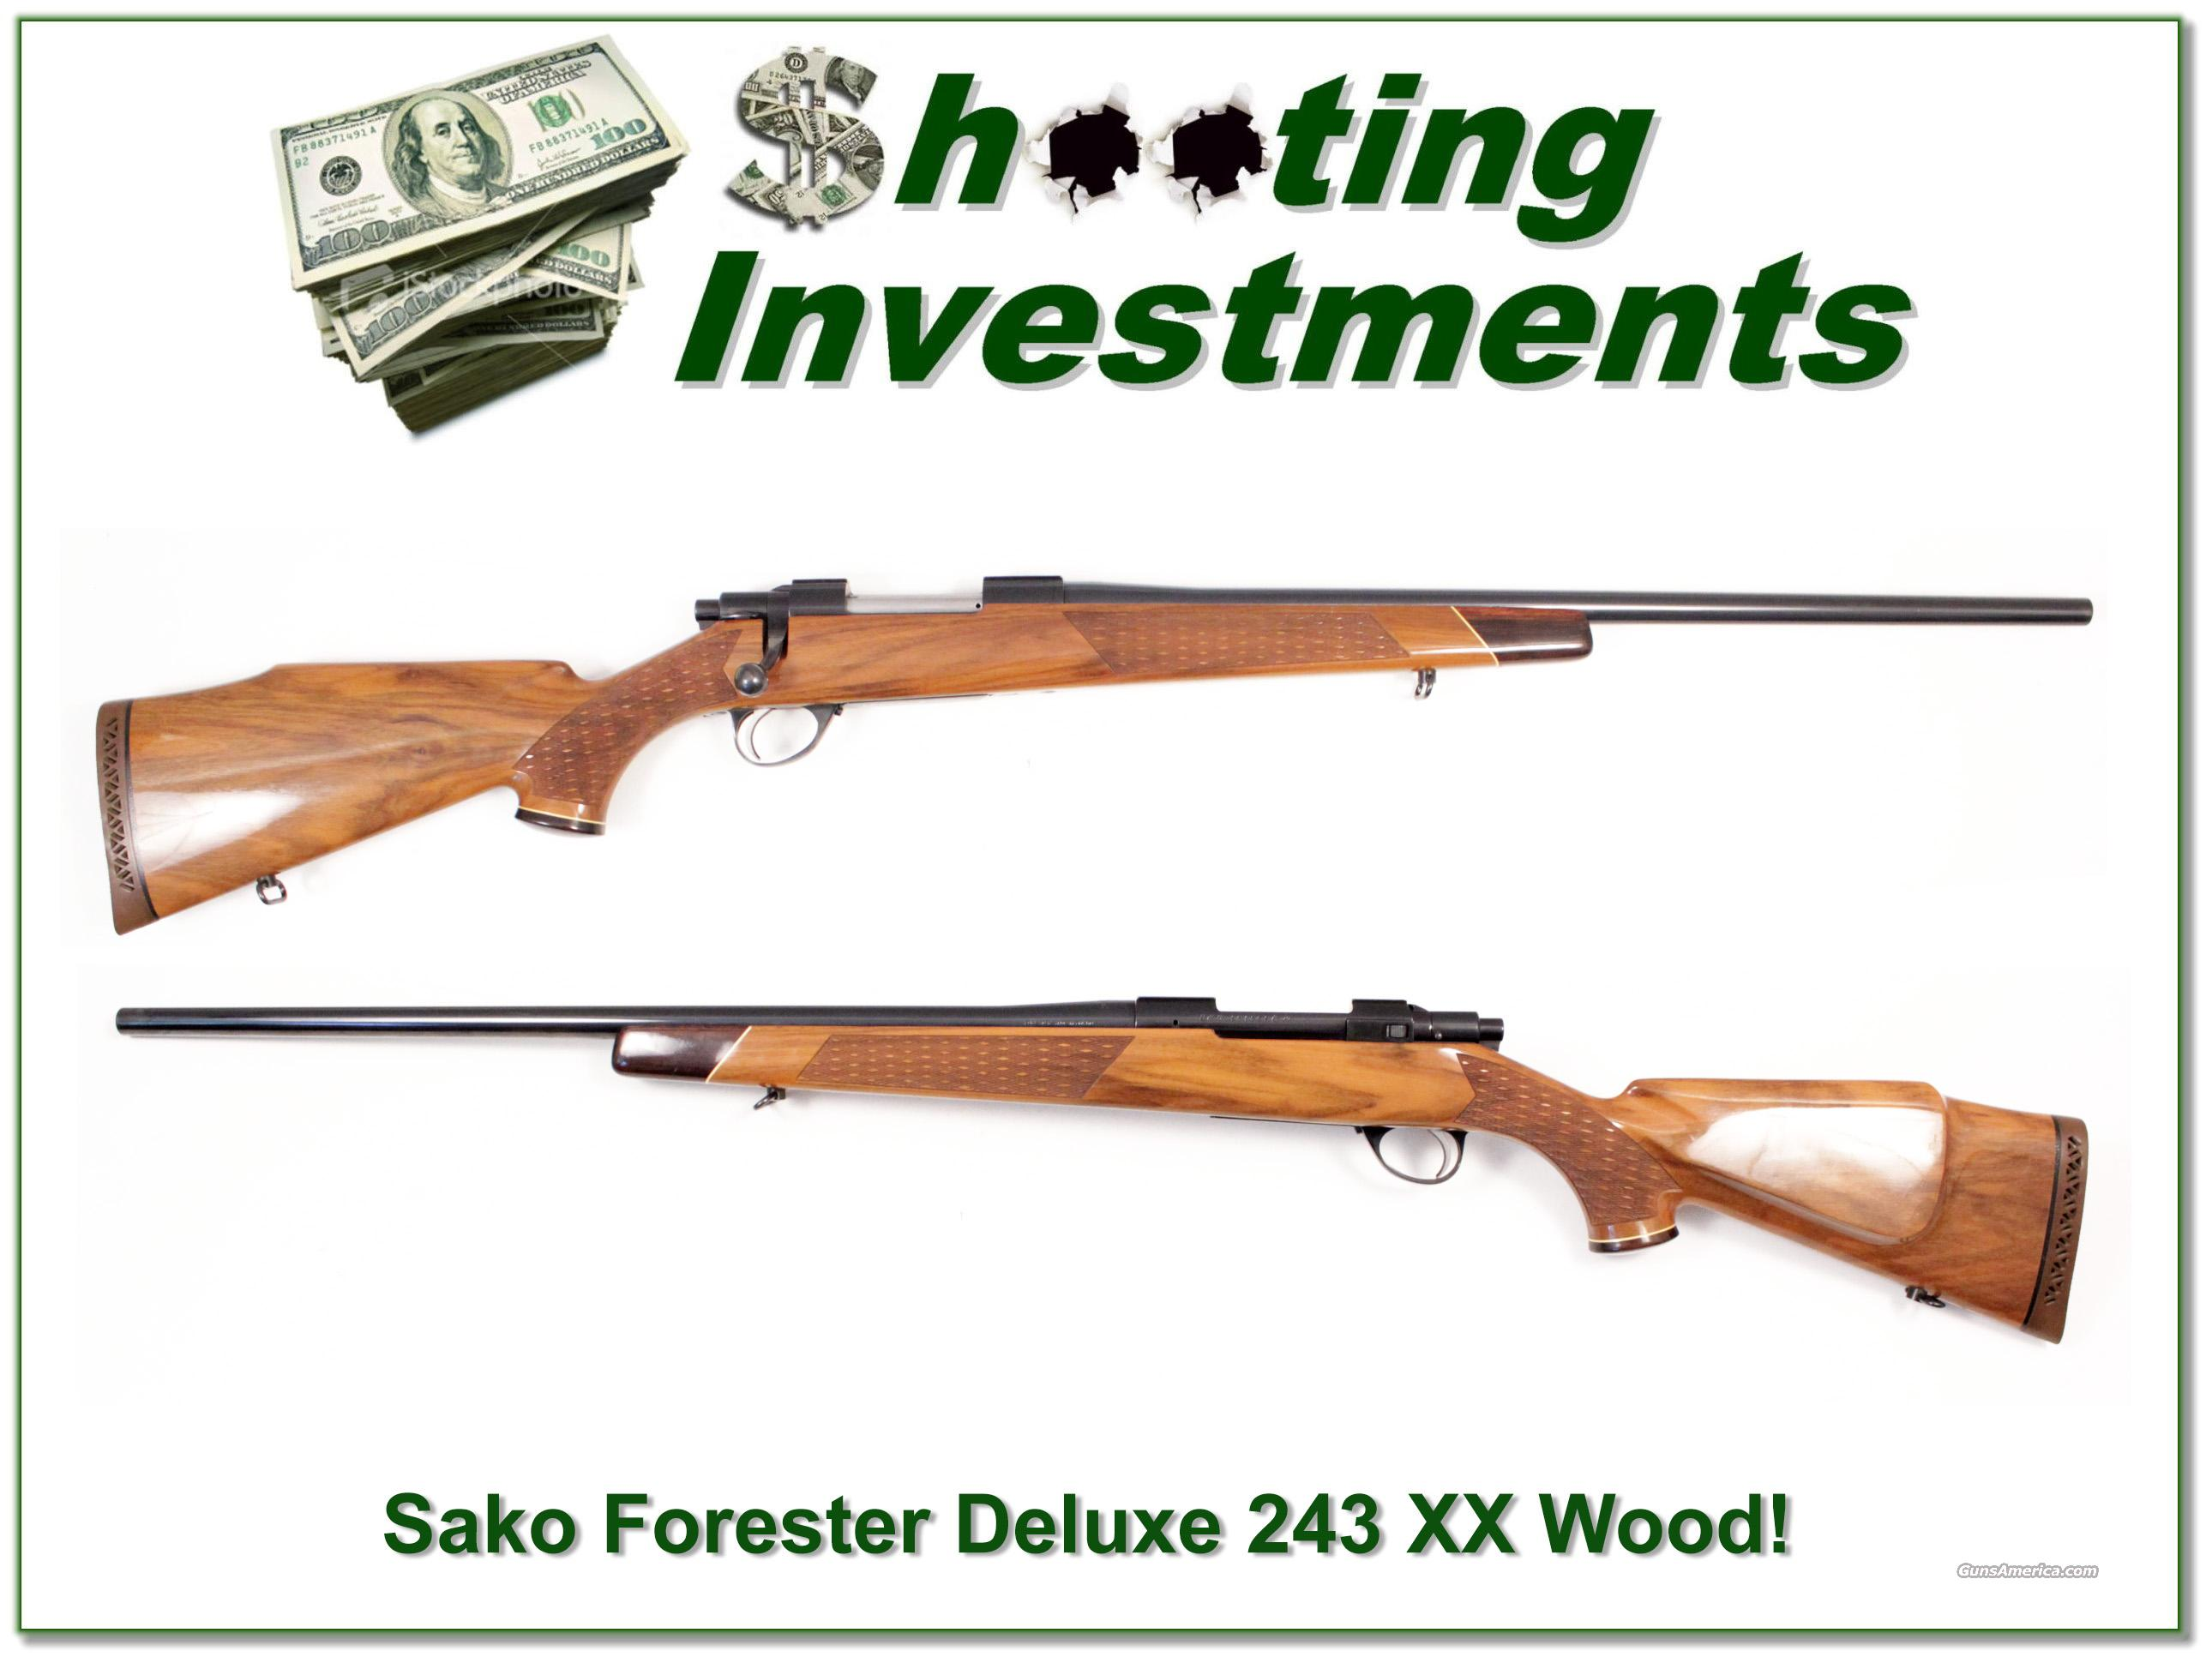 Sako Forester Deluxe 243 XX Wood!  Guns > Rifles > Sako Rifles > Other Bolt Action